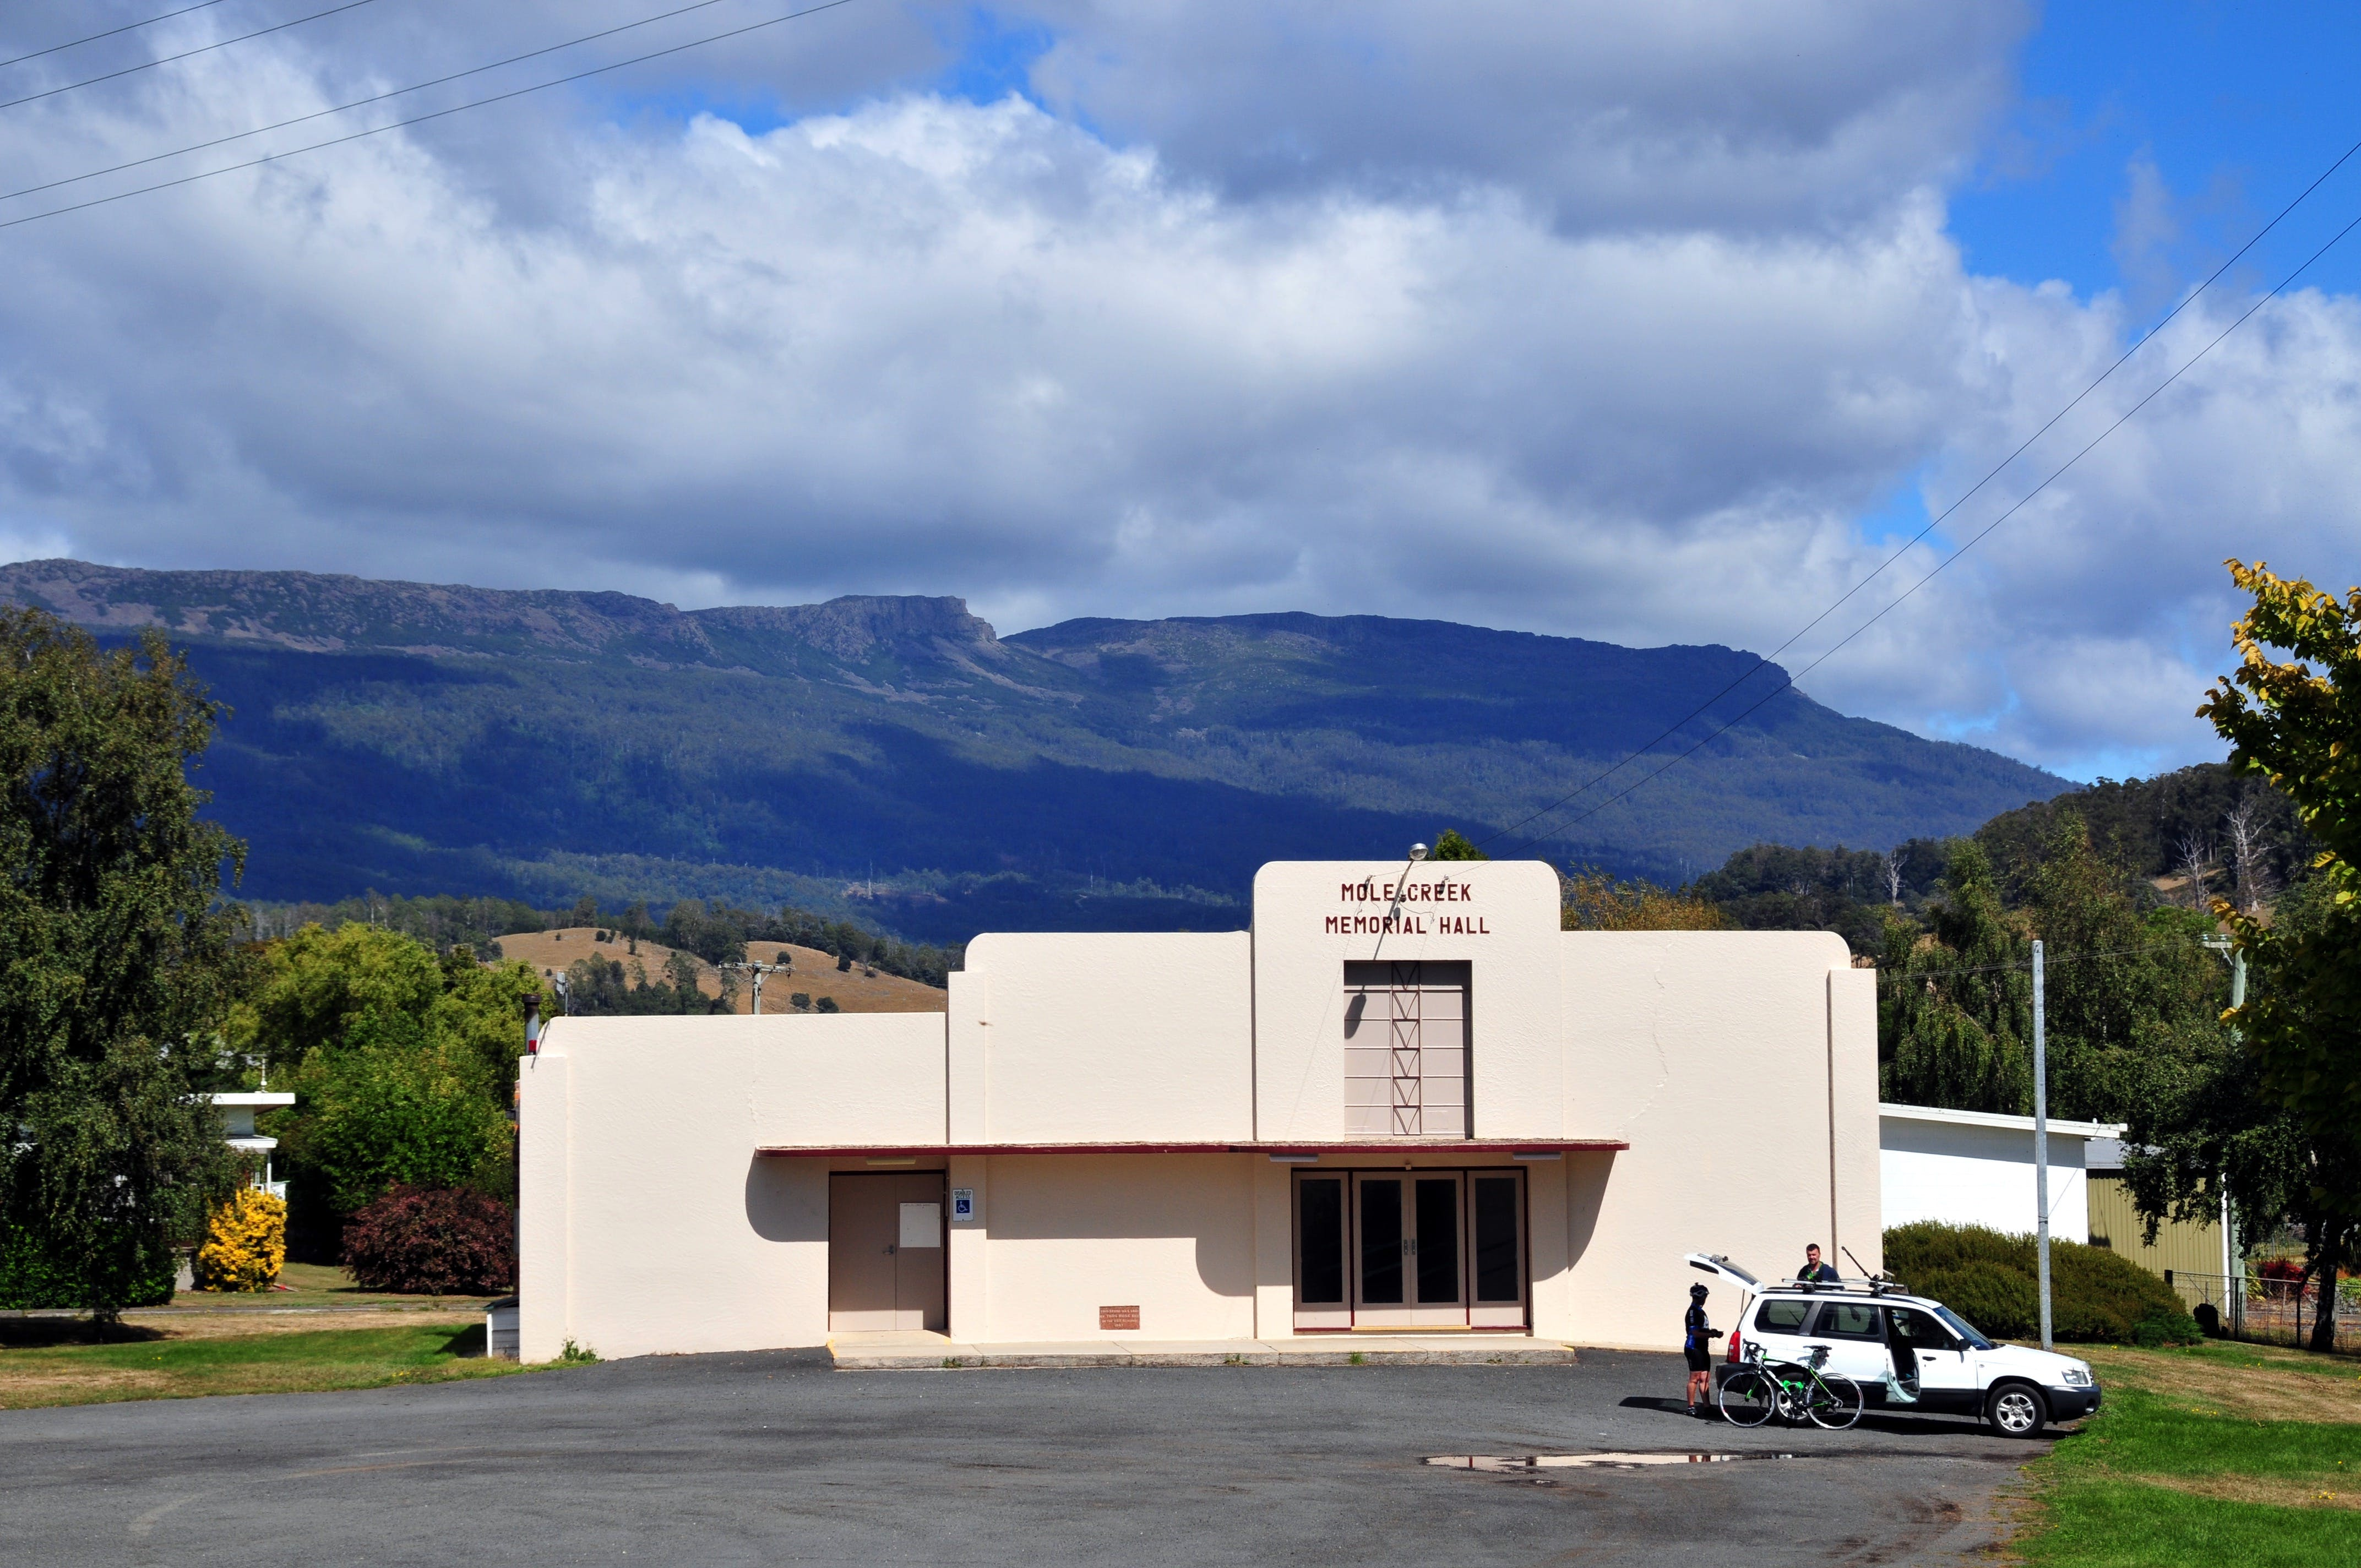 Mole Creek Market - Accommodation Perth